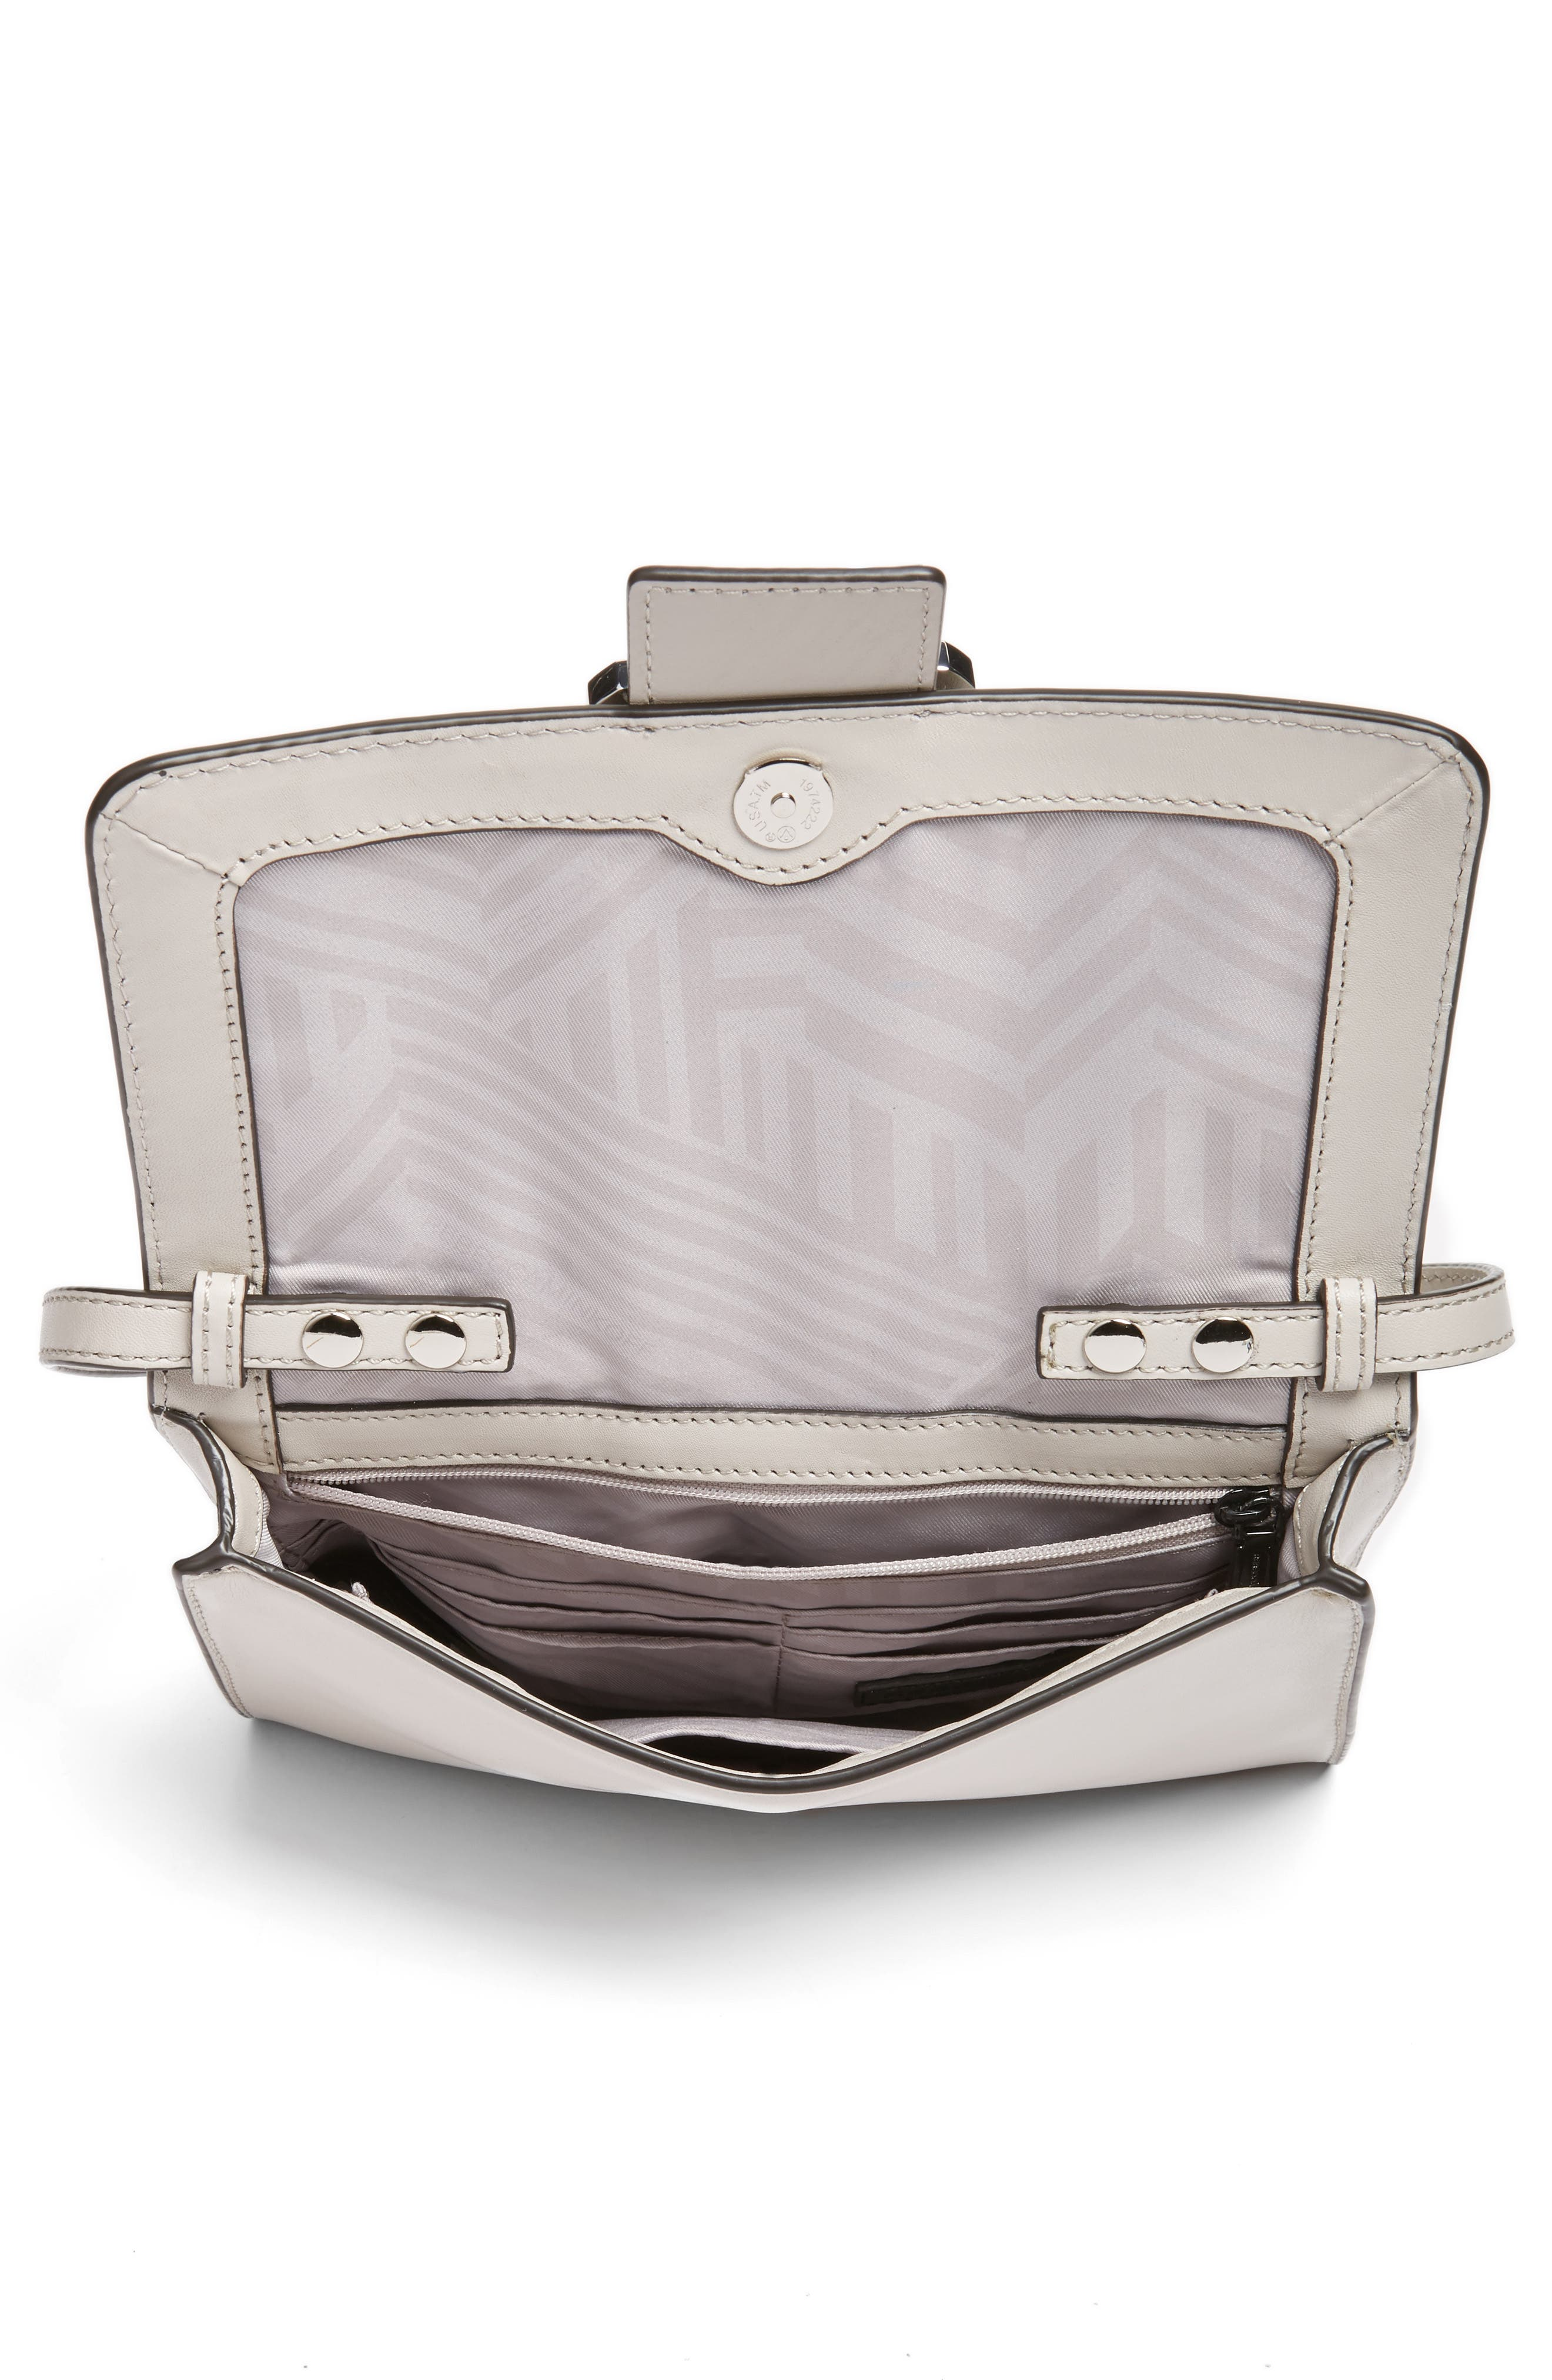 Hook Up Convertible Leather Clutch,                             Alternate thumbnail 2, color,                             269